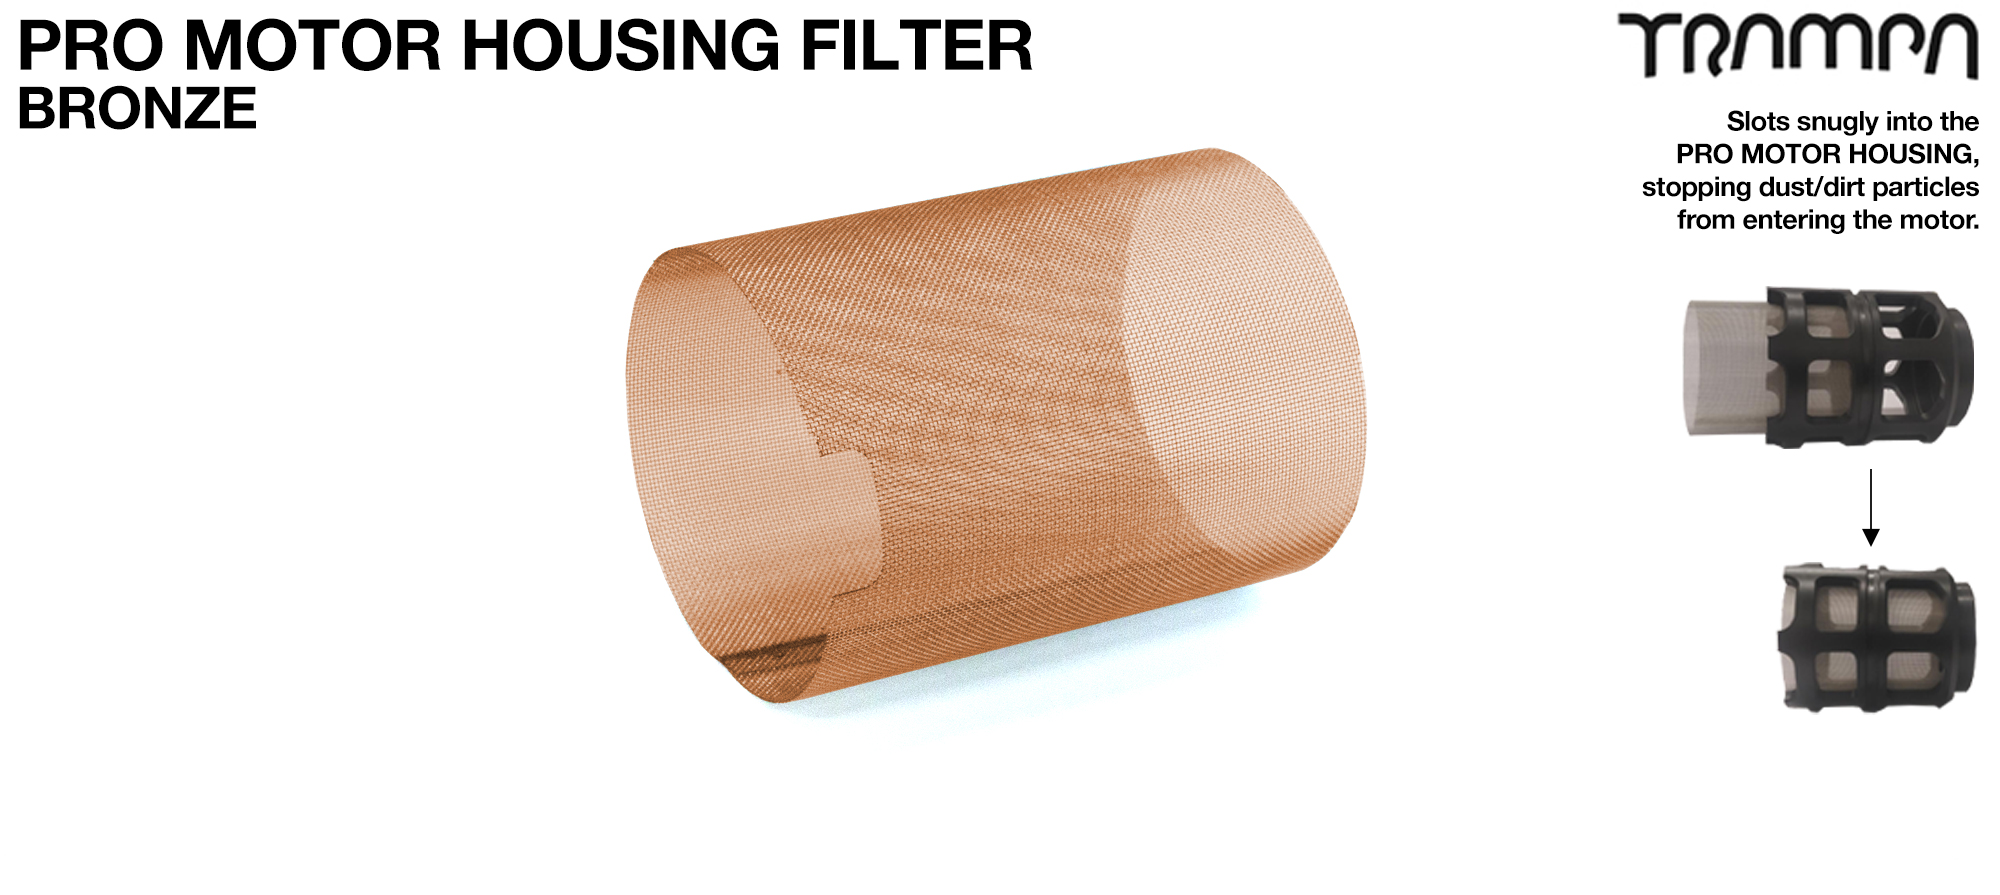 Motor Protection Cover MESH FILTER - BRONZE